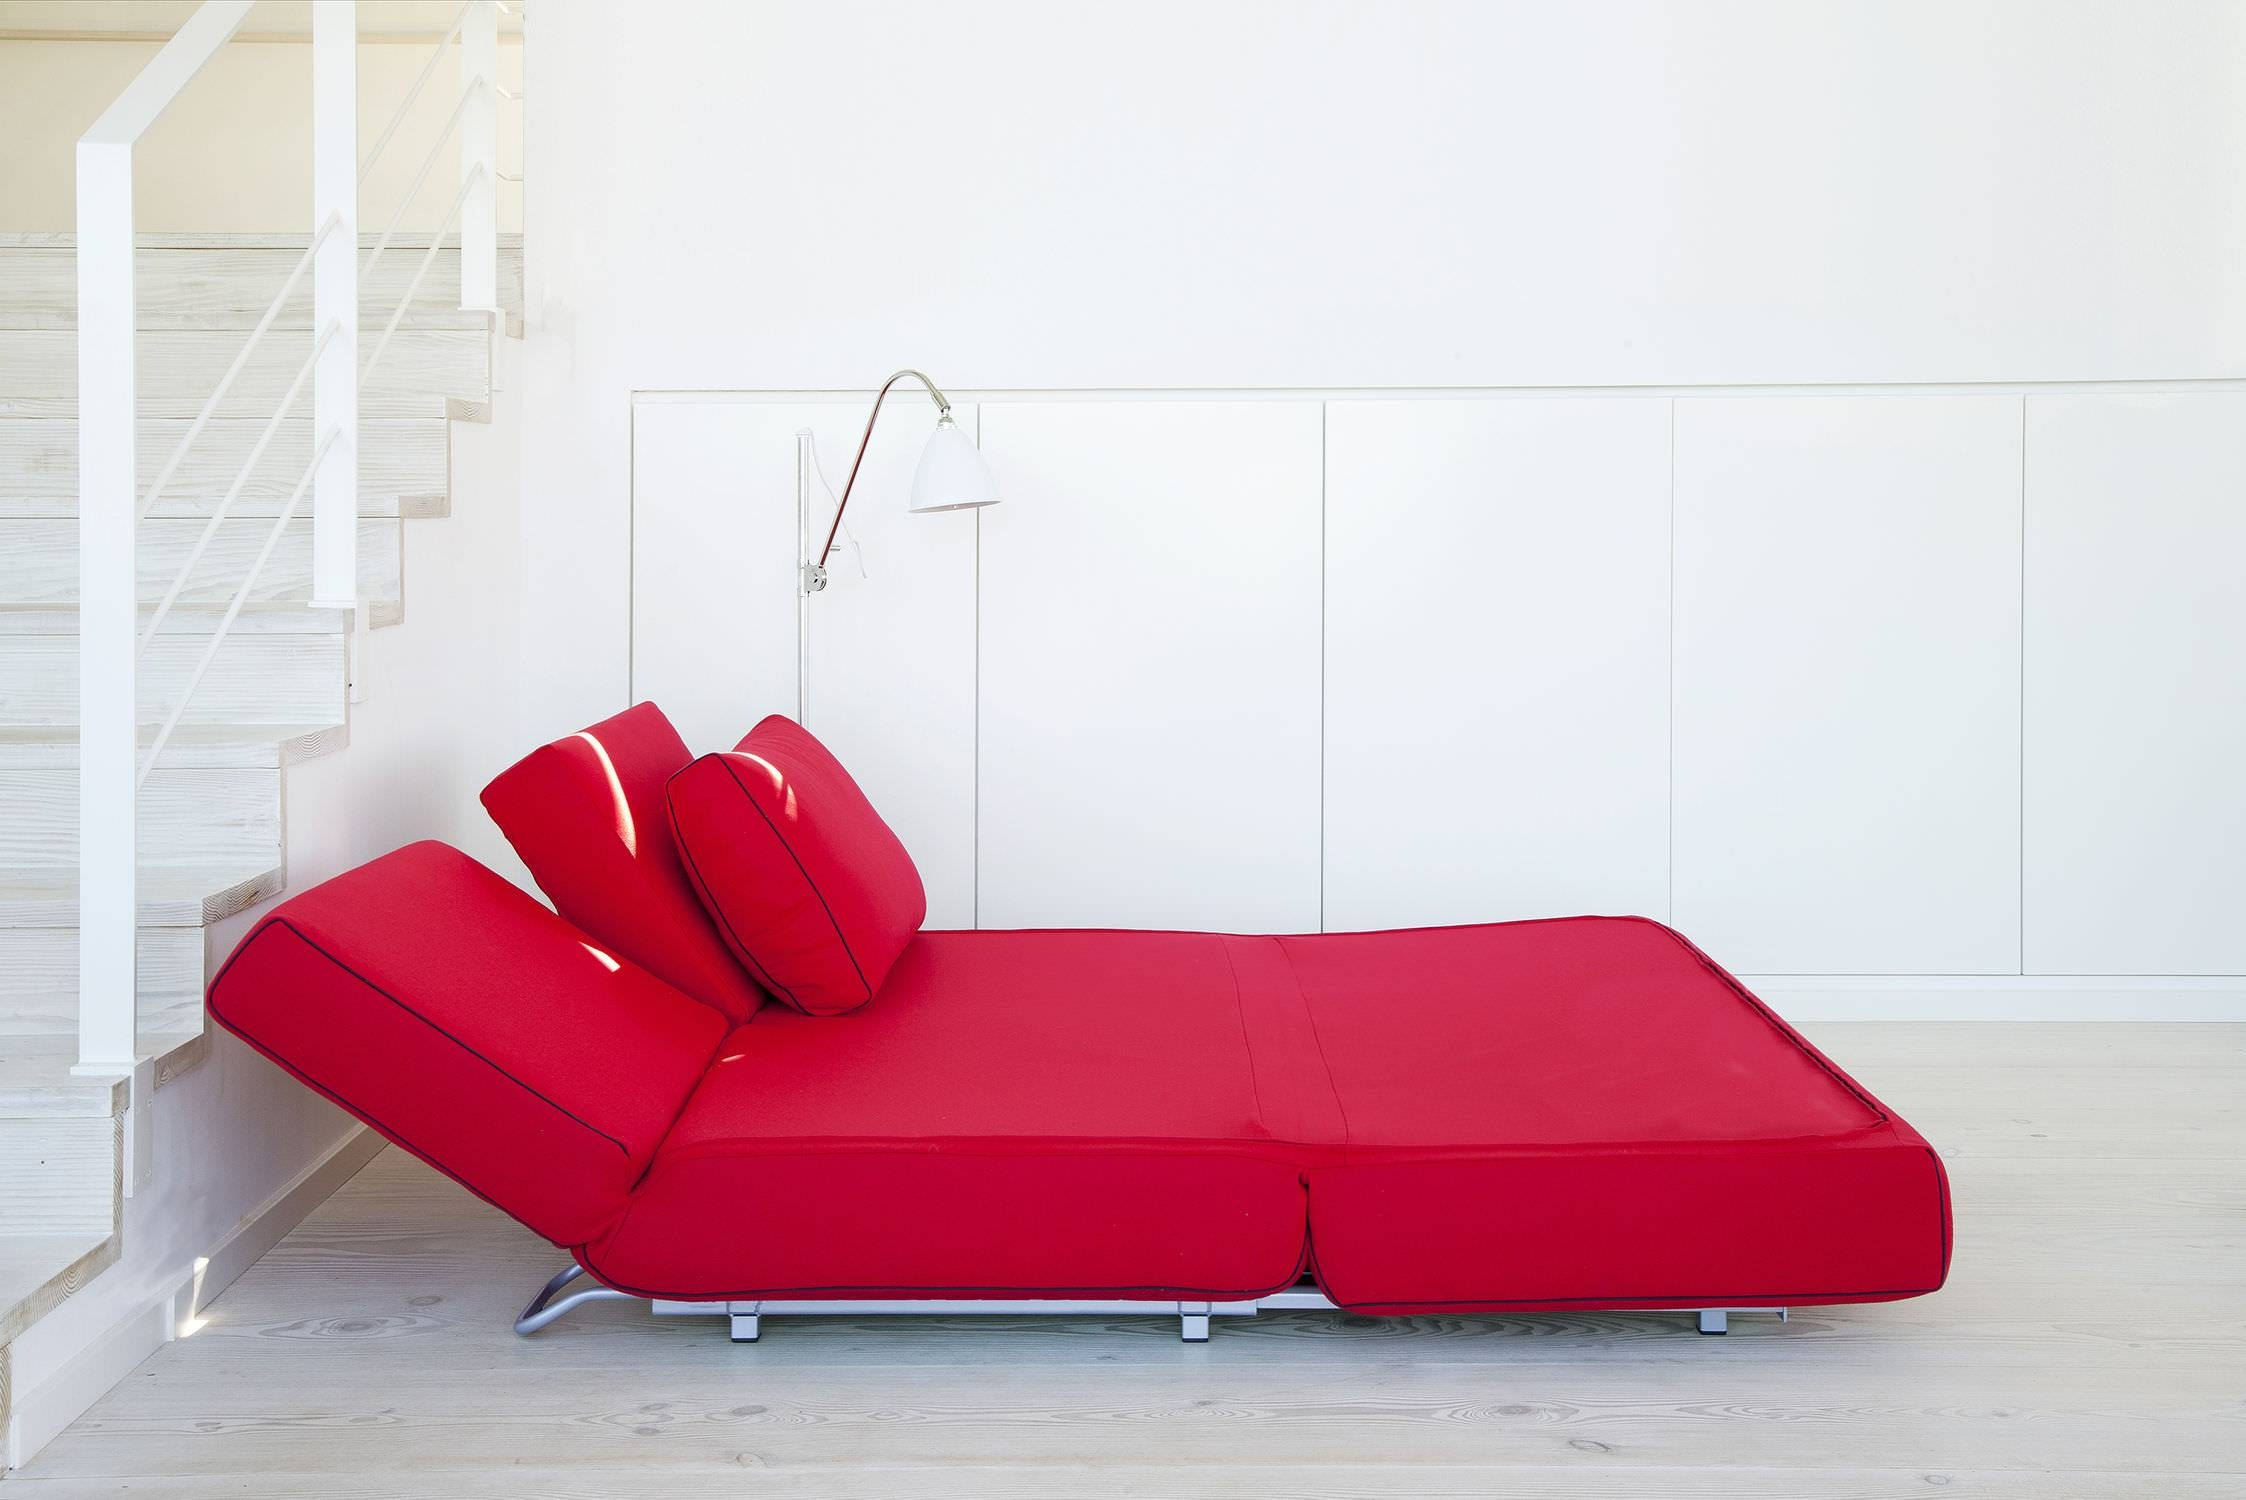 Sofa Bed / Contemporary / Fabric / 2 Seater – Active : City Intended For City Sofa Beds (View 21 of 30)